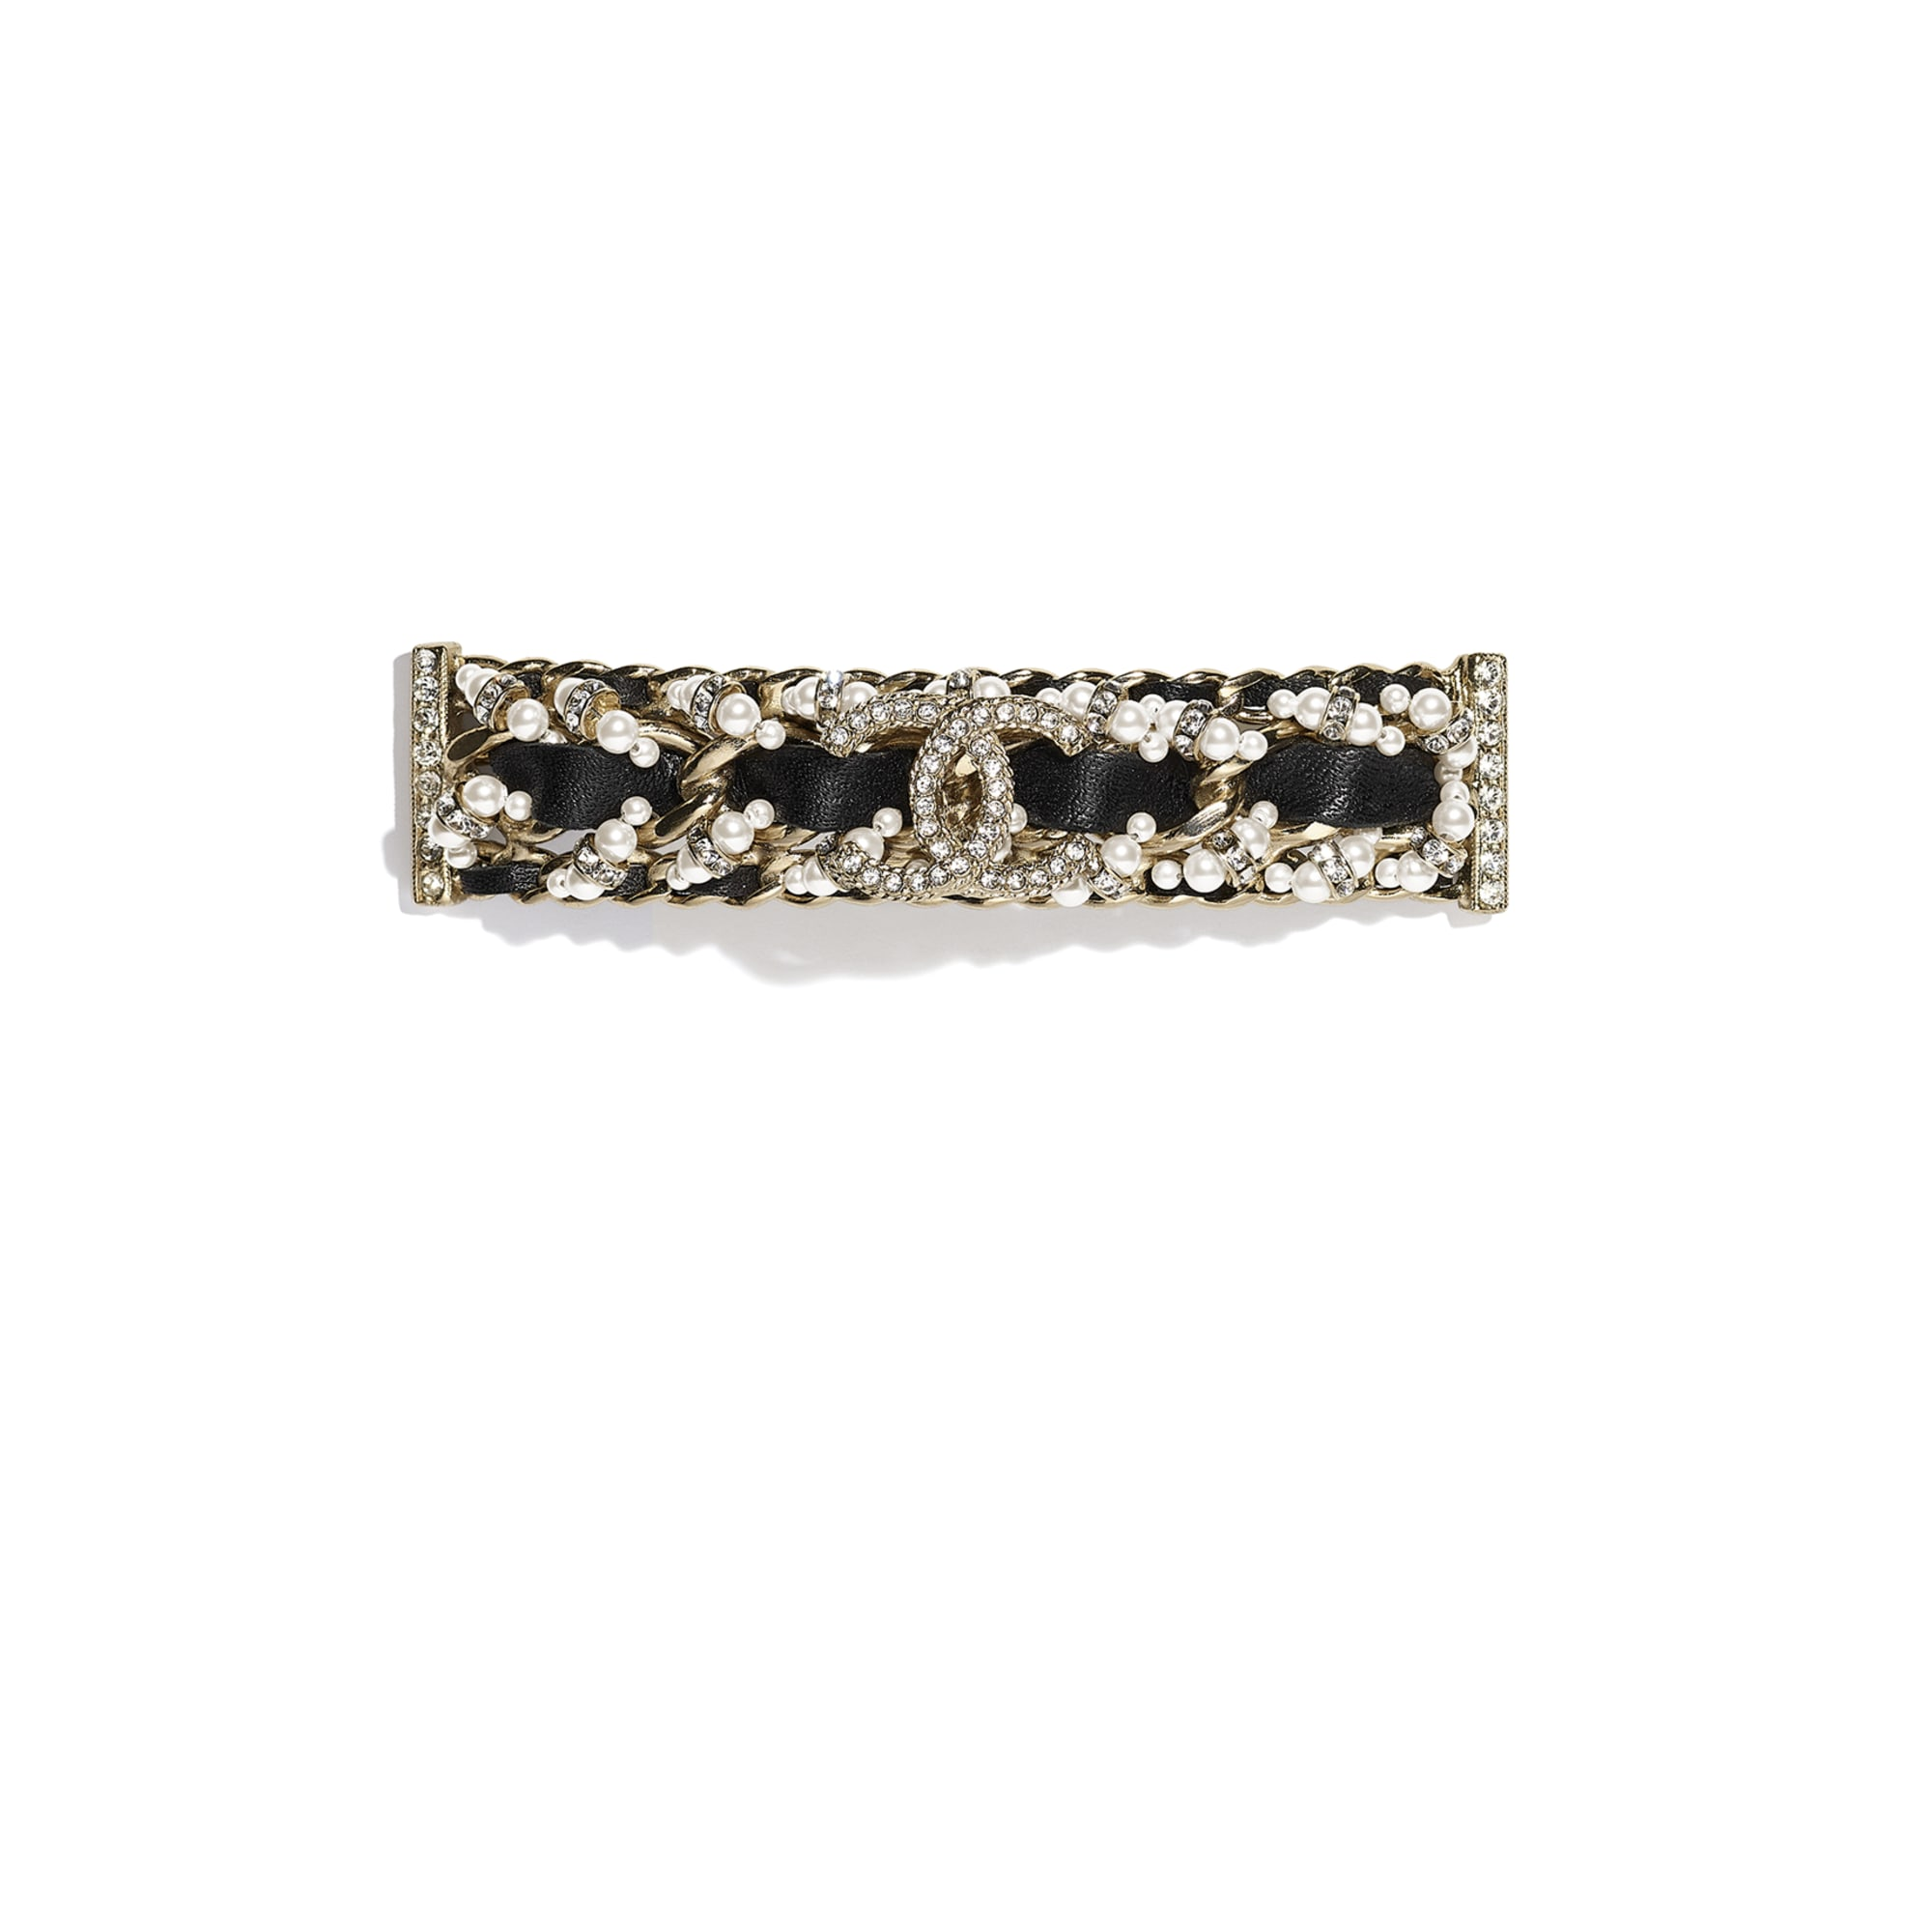 Hair Clip - Gold, Black, Pearly White & Crystal - Metal, Calfskin, Glass Pearls & Strass - CHANEL - Default view - see standard sized version